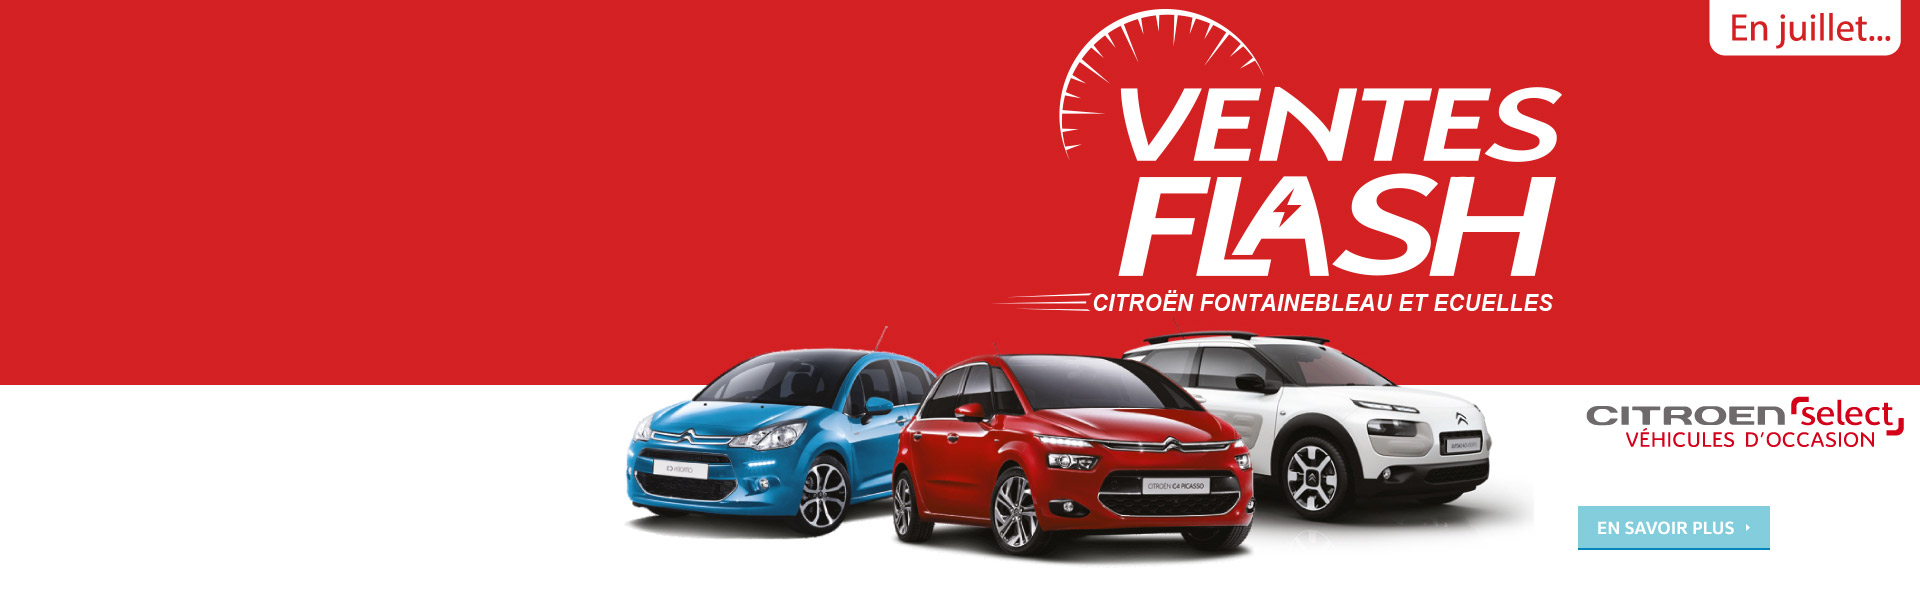 Ventes Flash Citroën